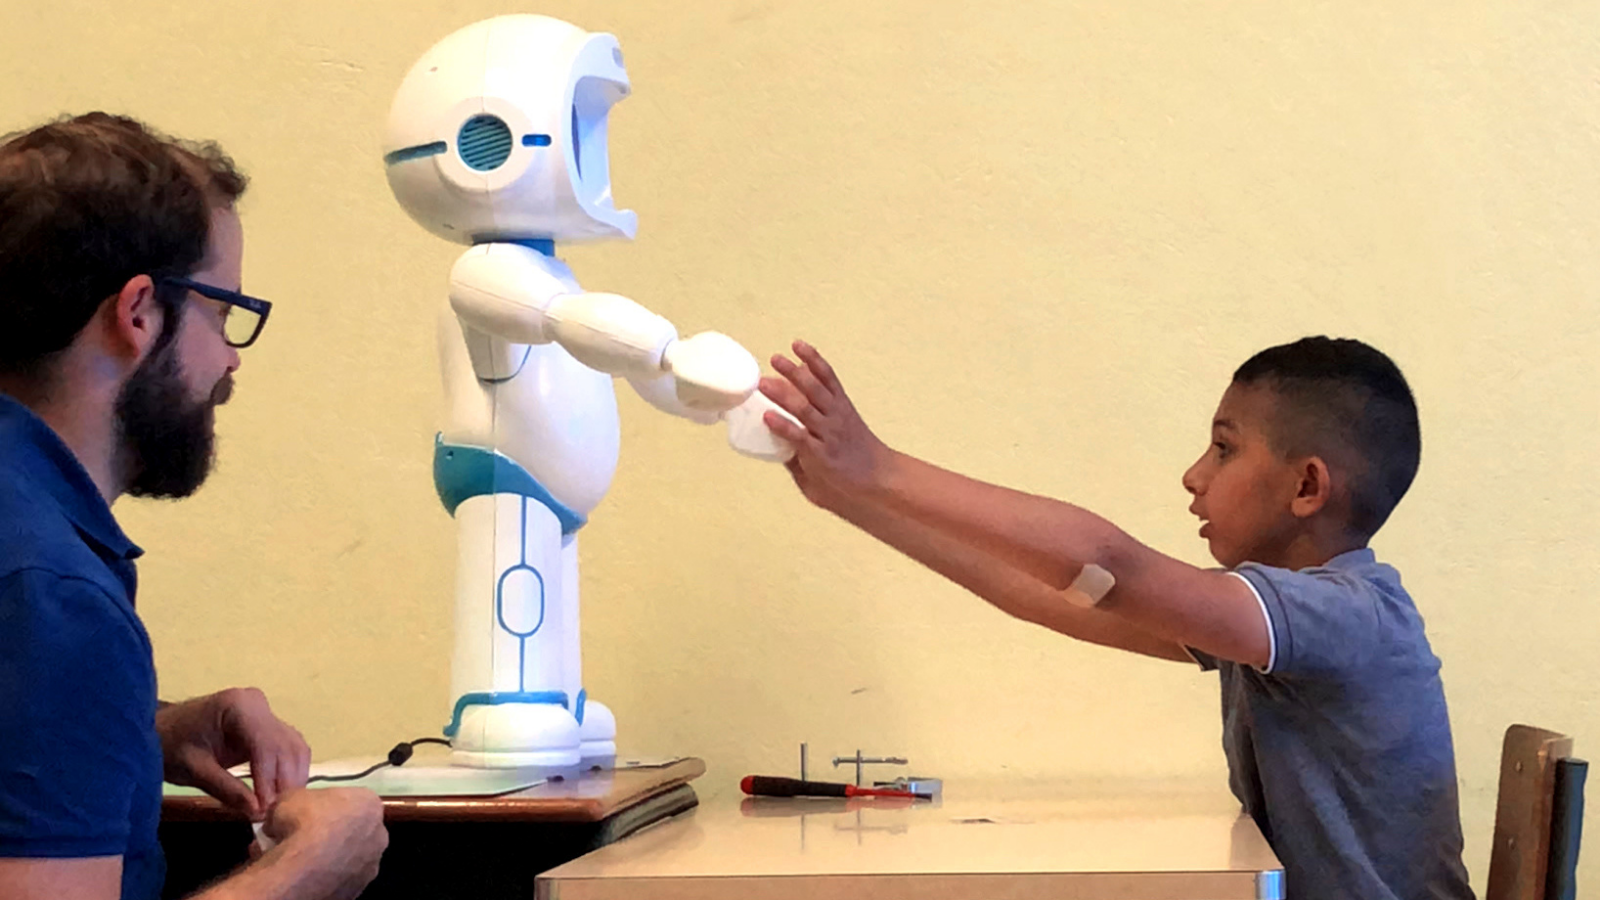 Can a robot open new doors to teach social interaction to children with autism?